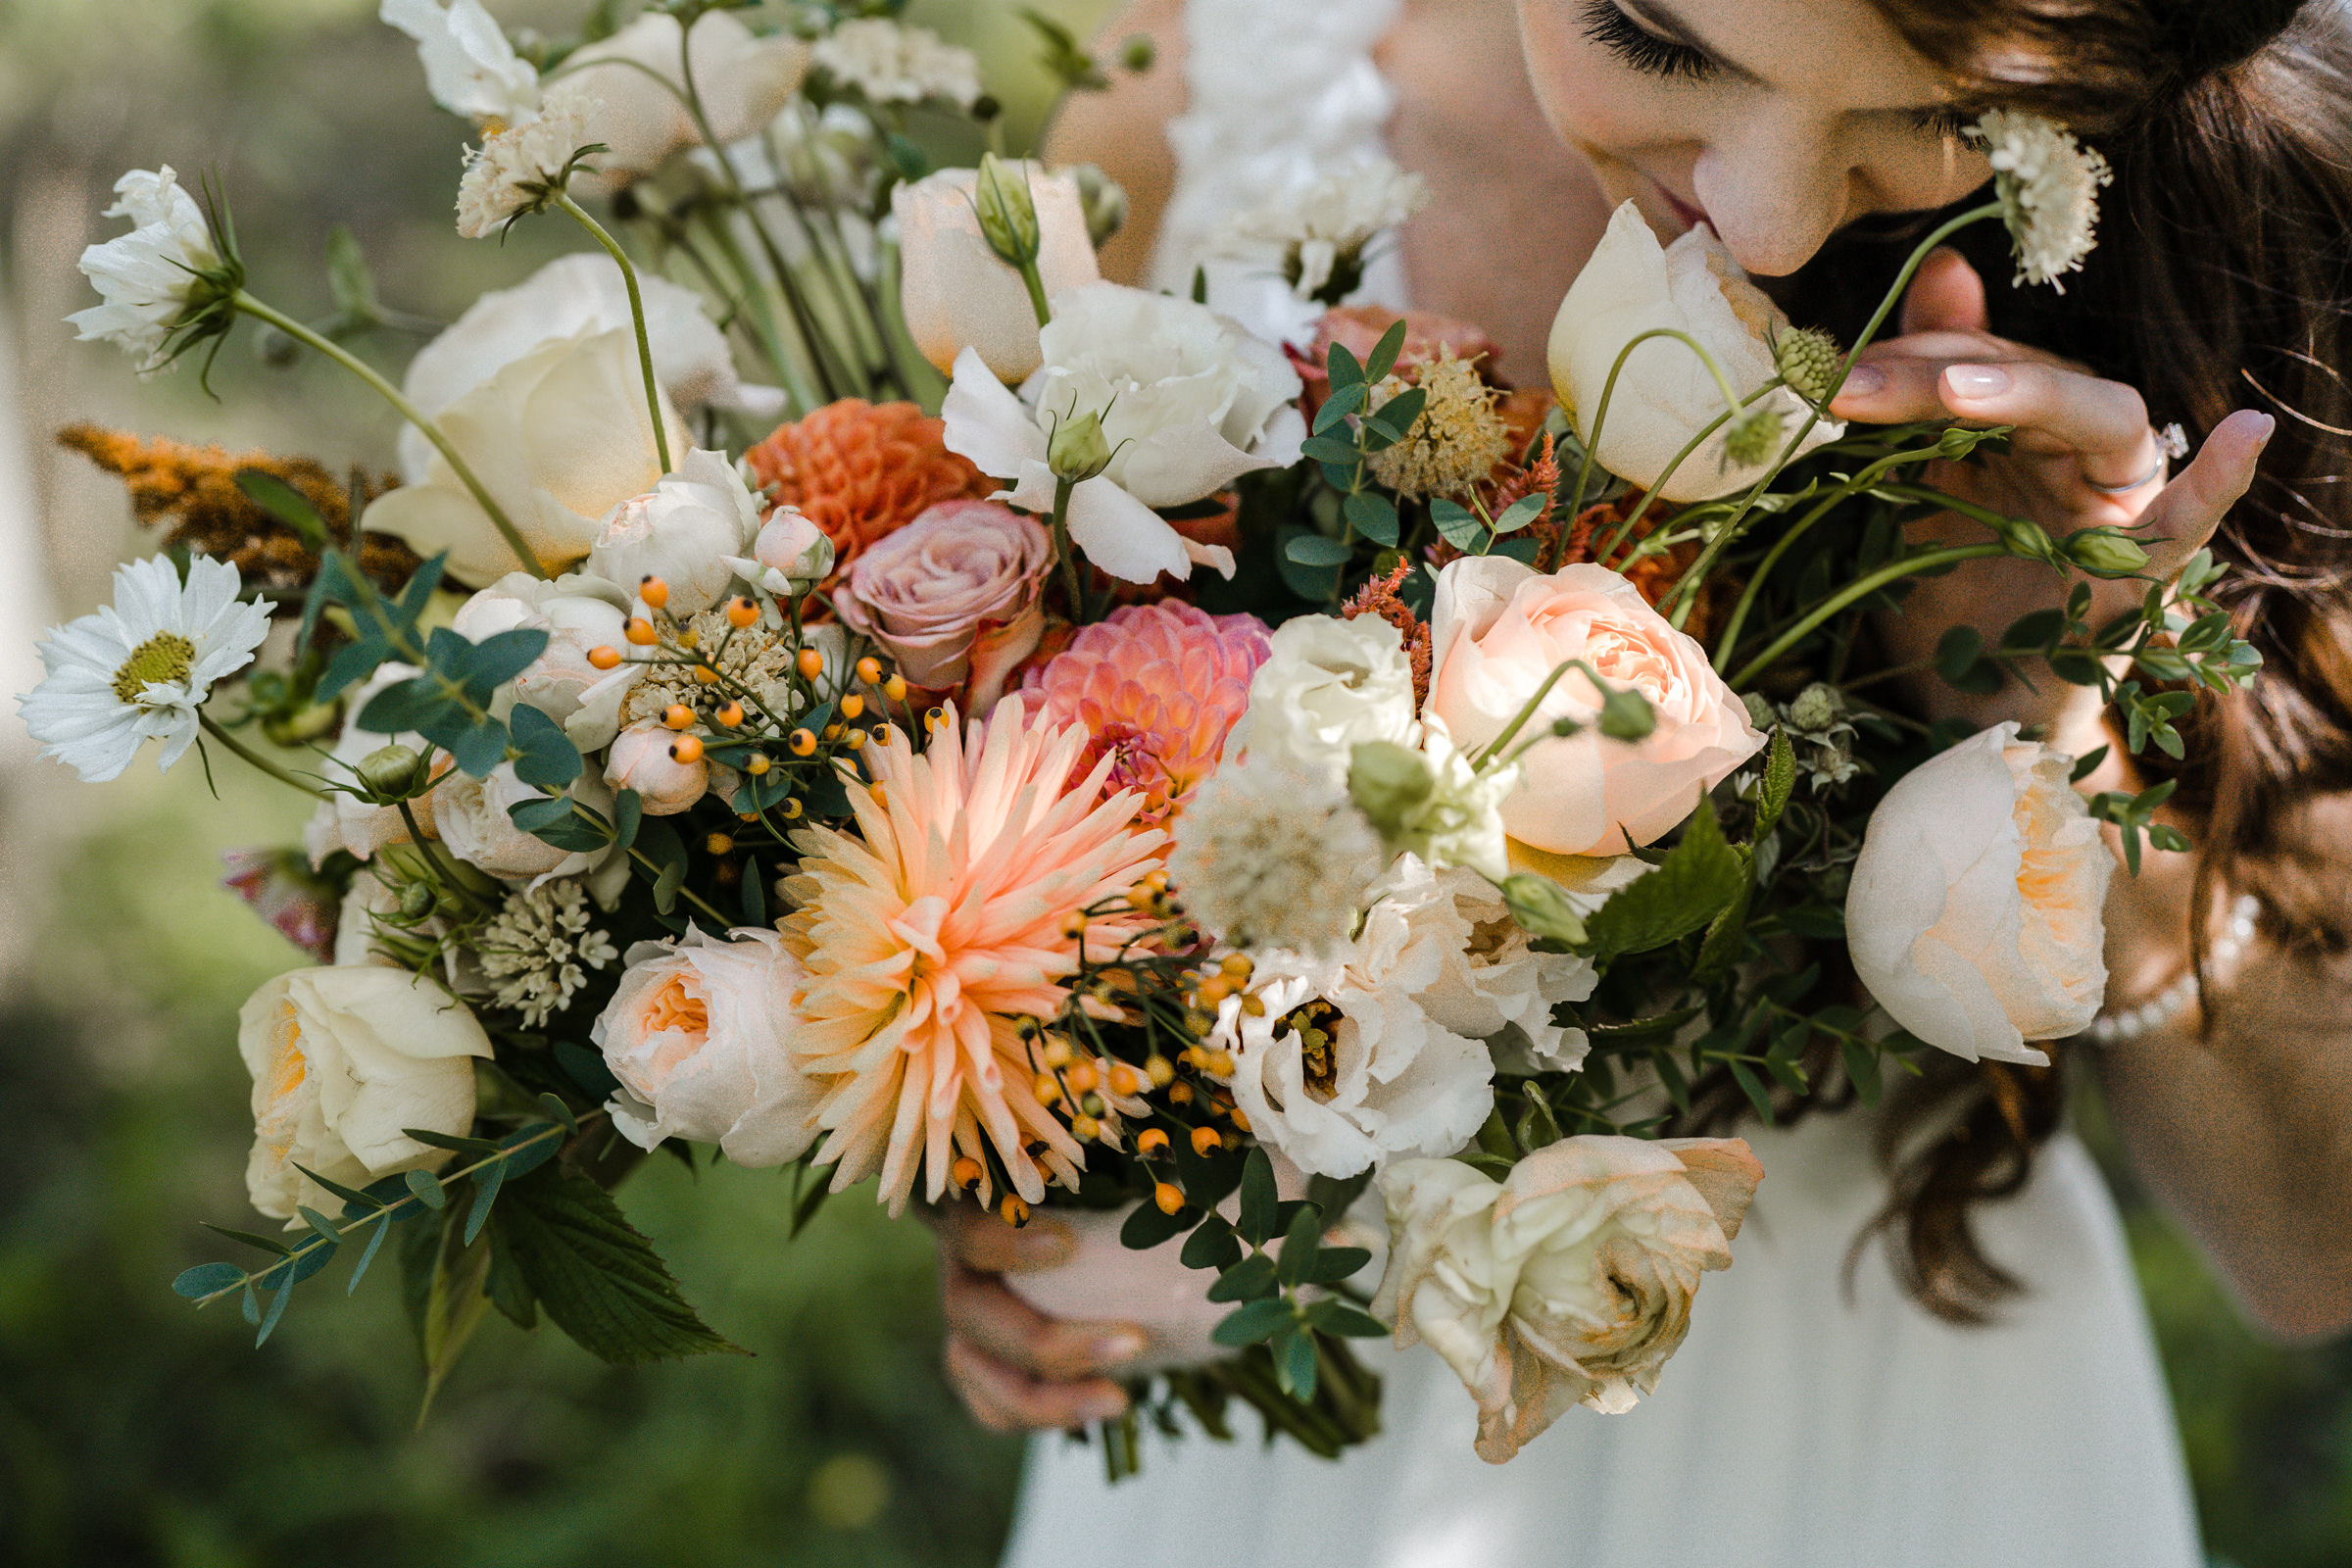 Bride with detail of bouquet - photo by Sasha Reiko Photography